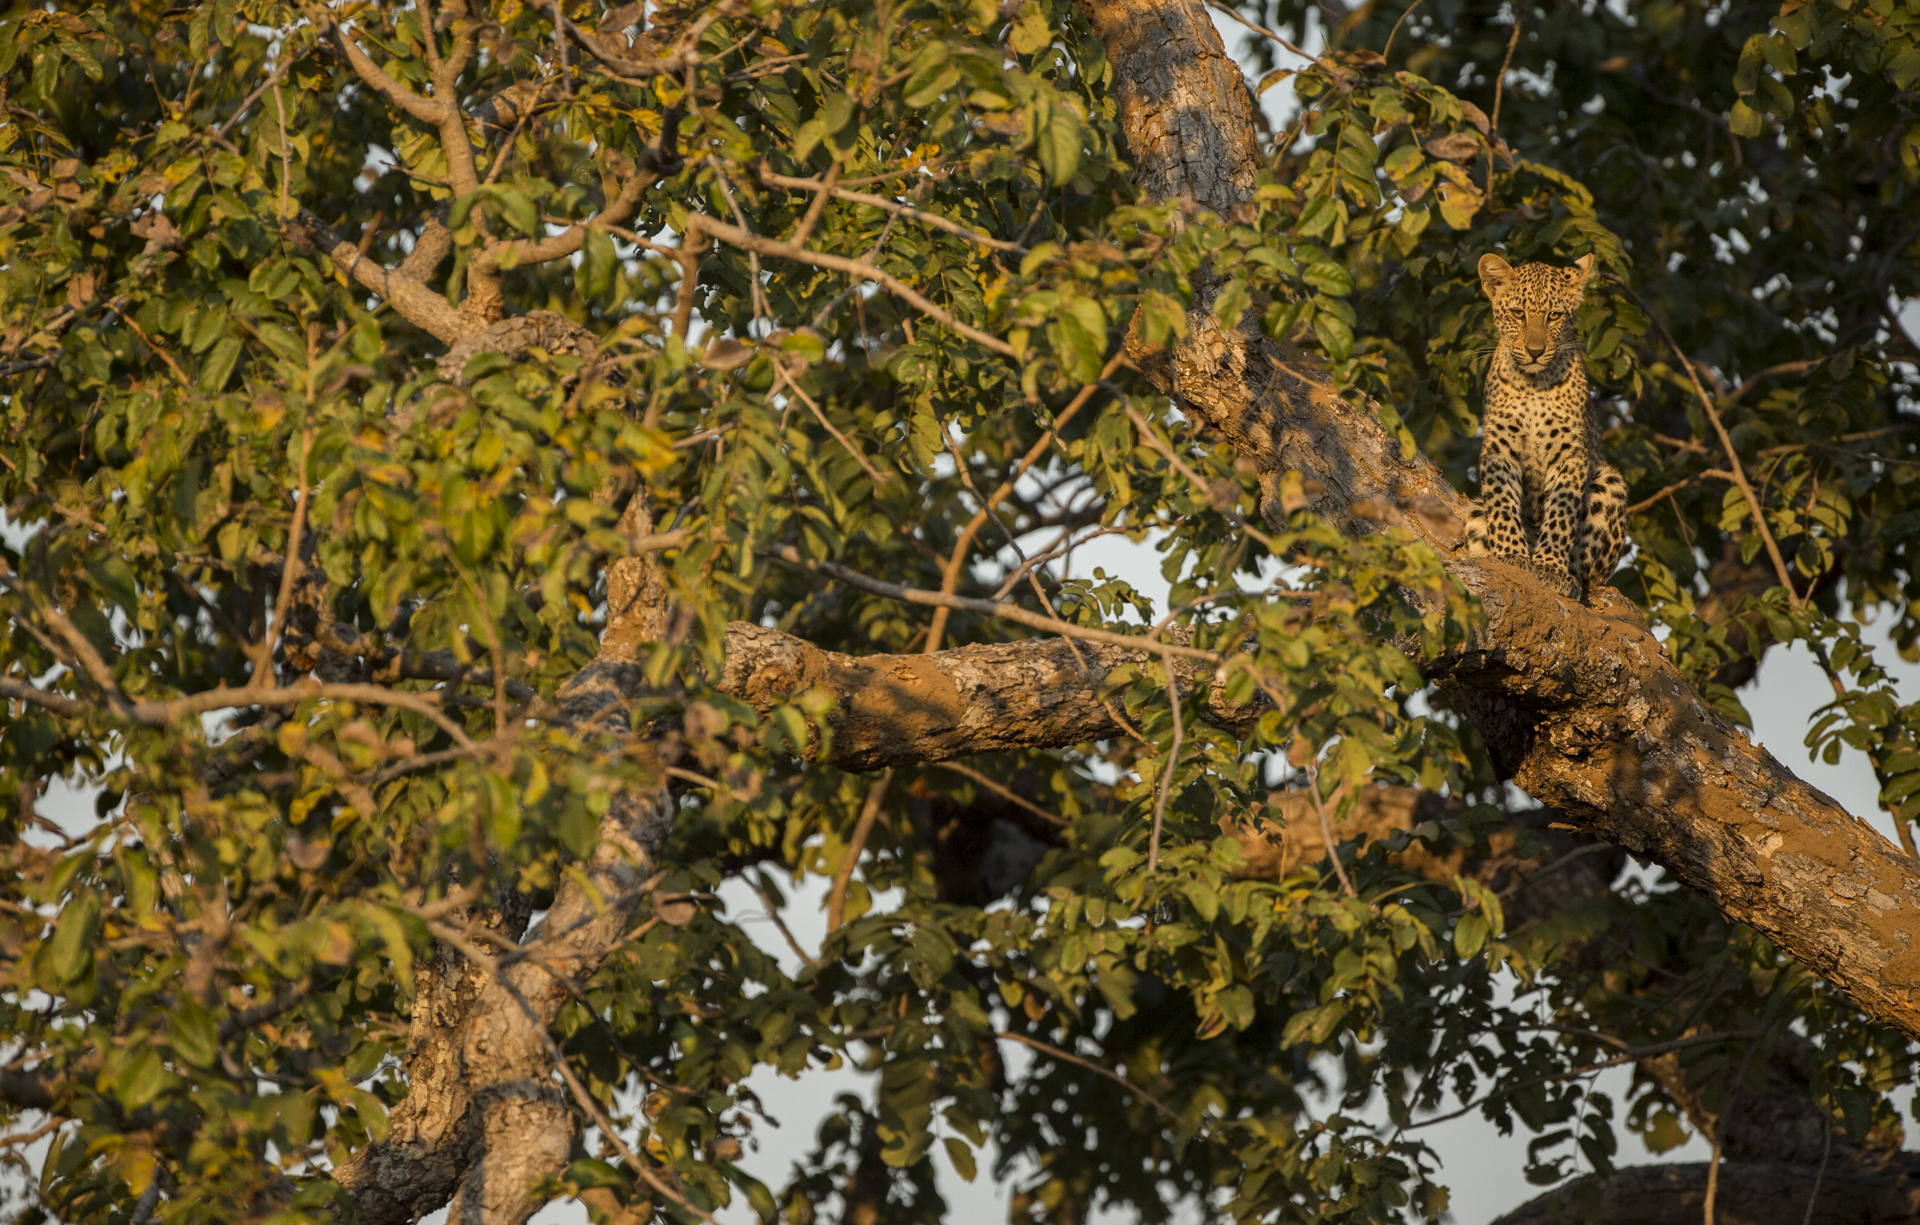 For a young leopard cub trees are the safest place, away from any opportunistic hyenas, lions or even other leopards.